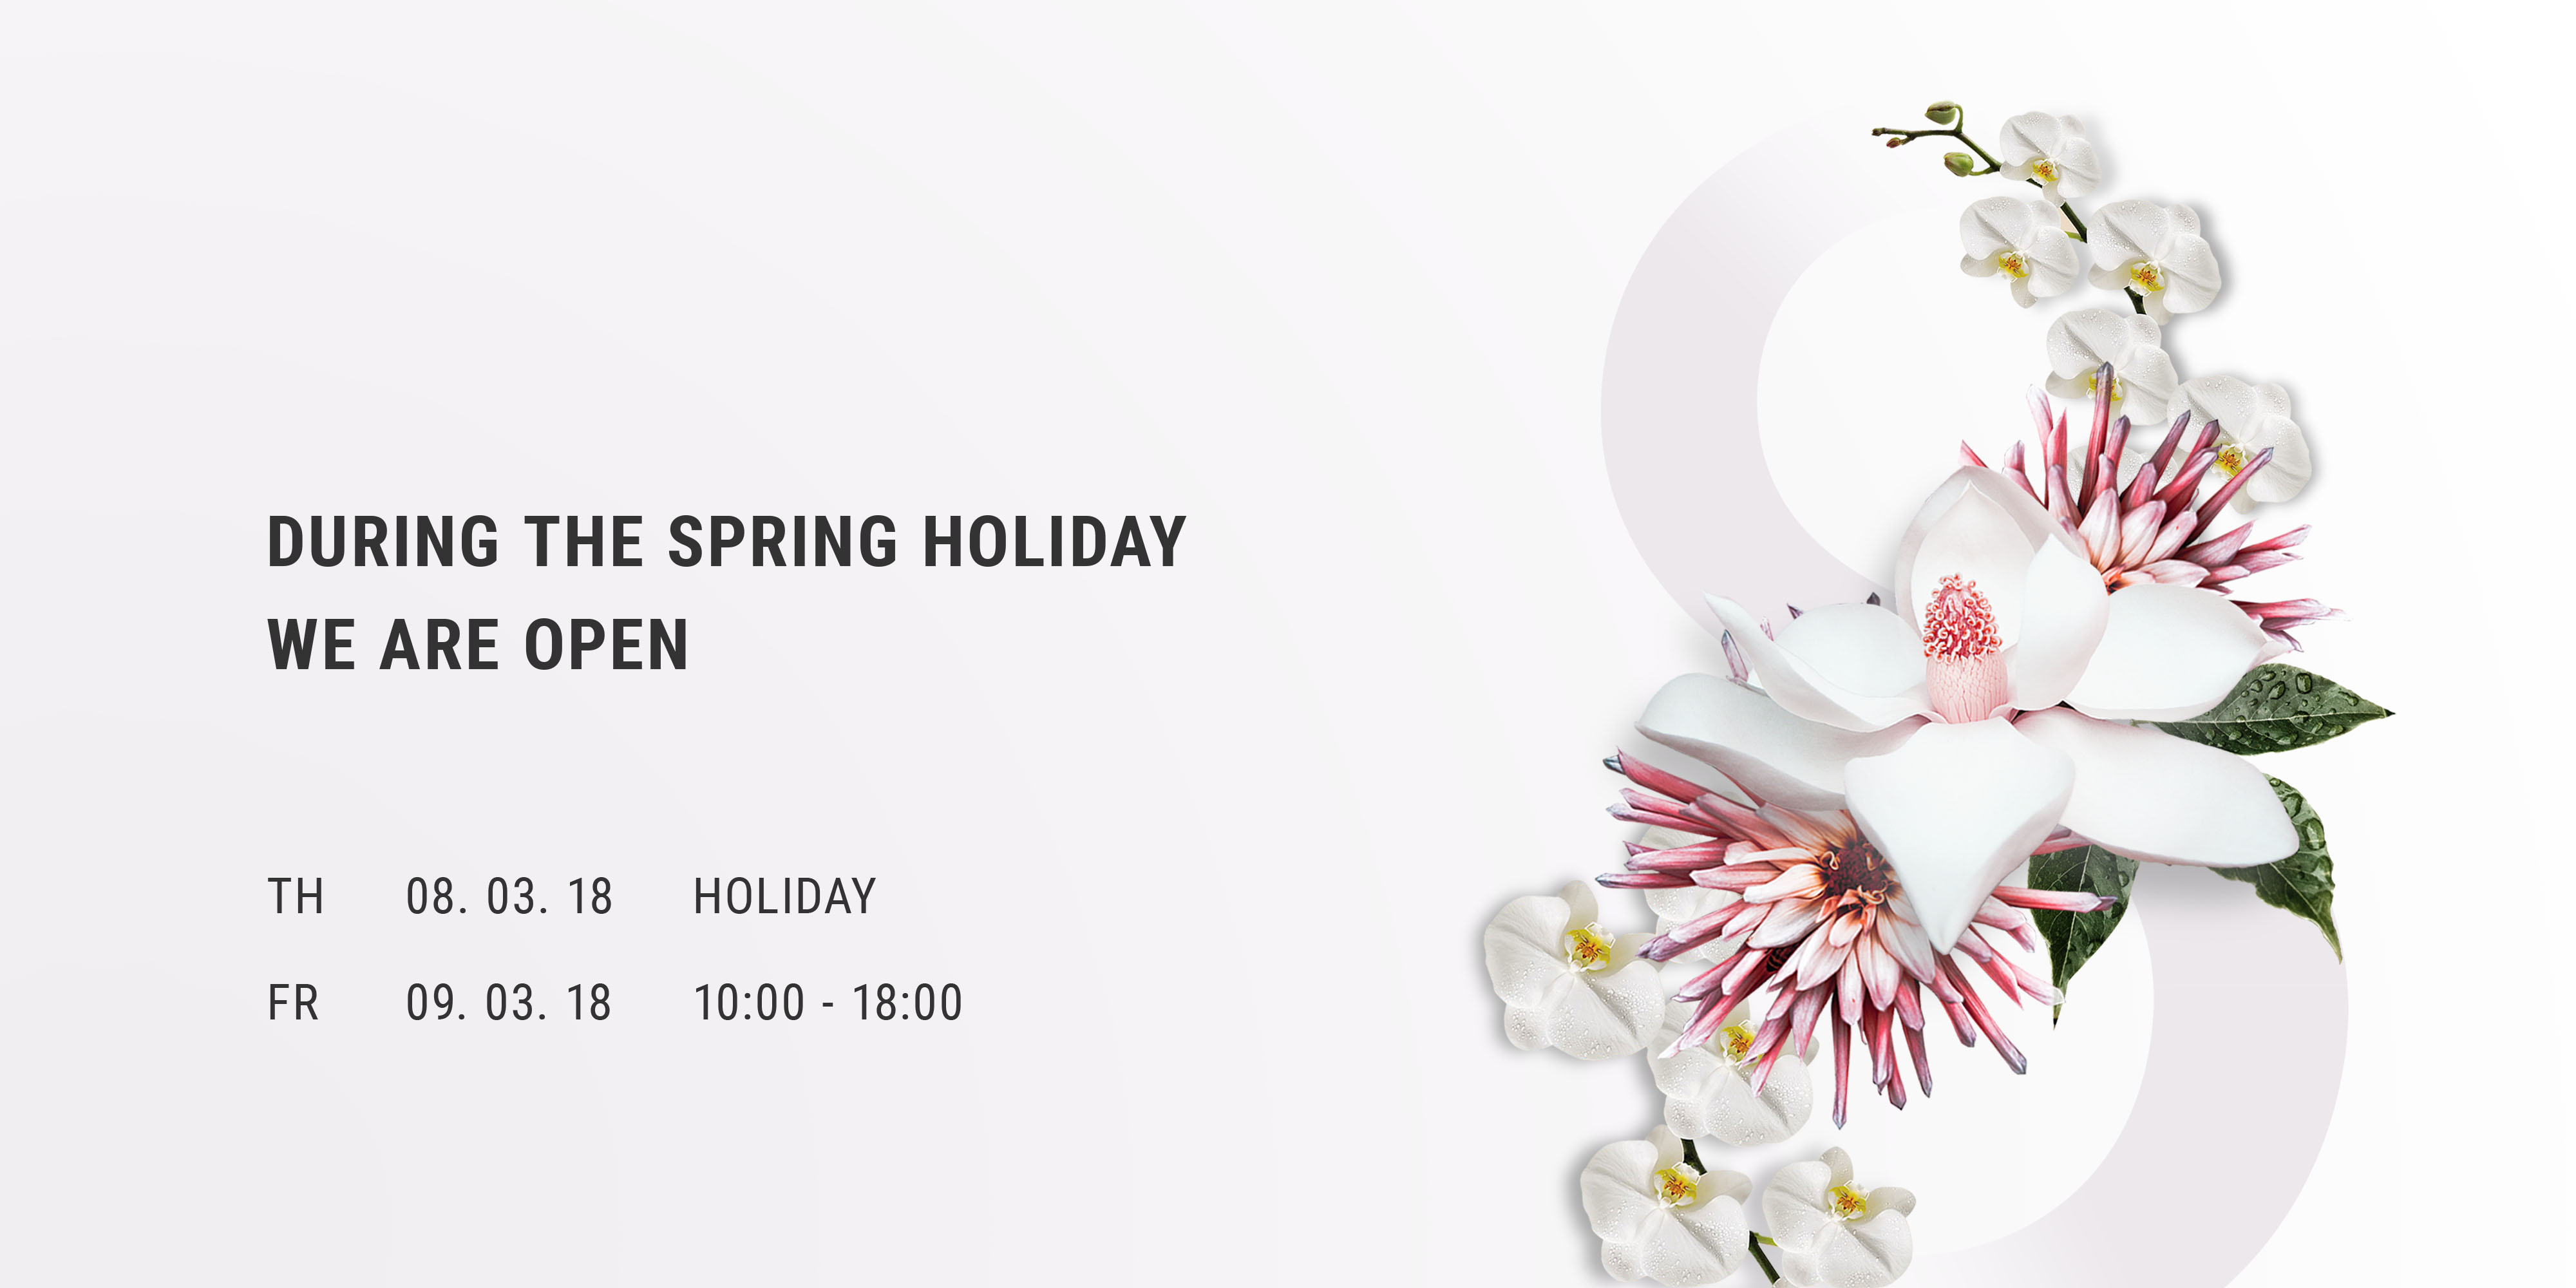 During the spring holidays we are open